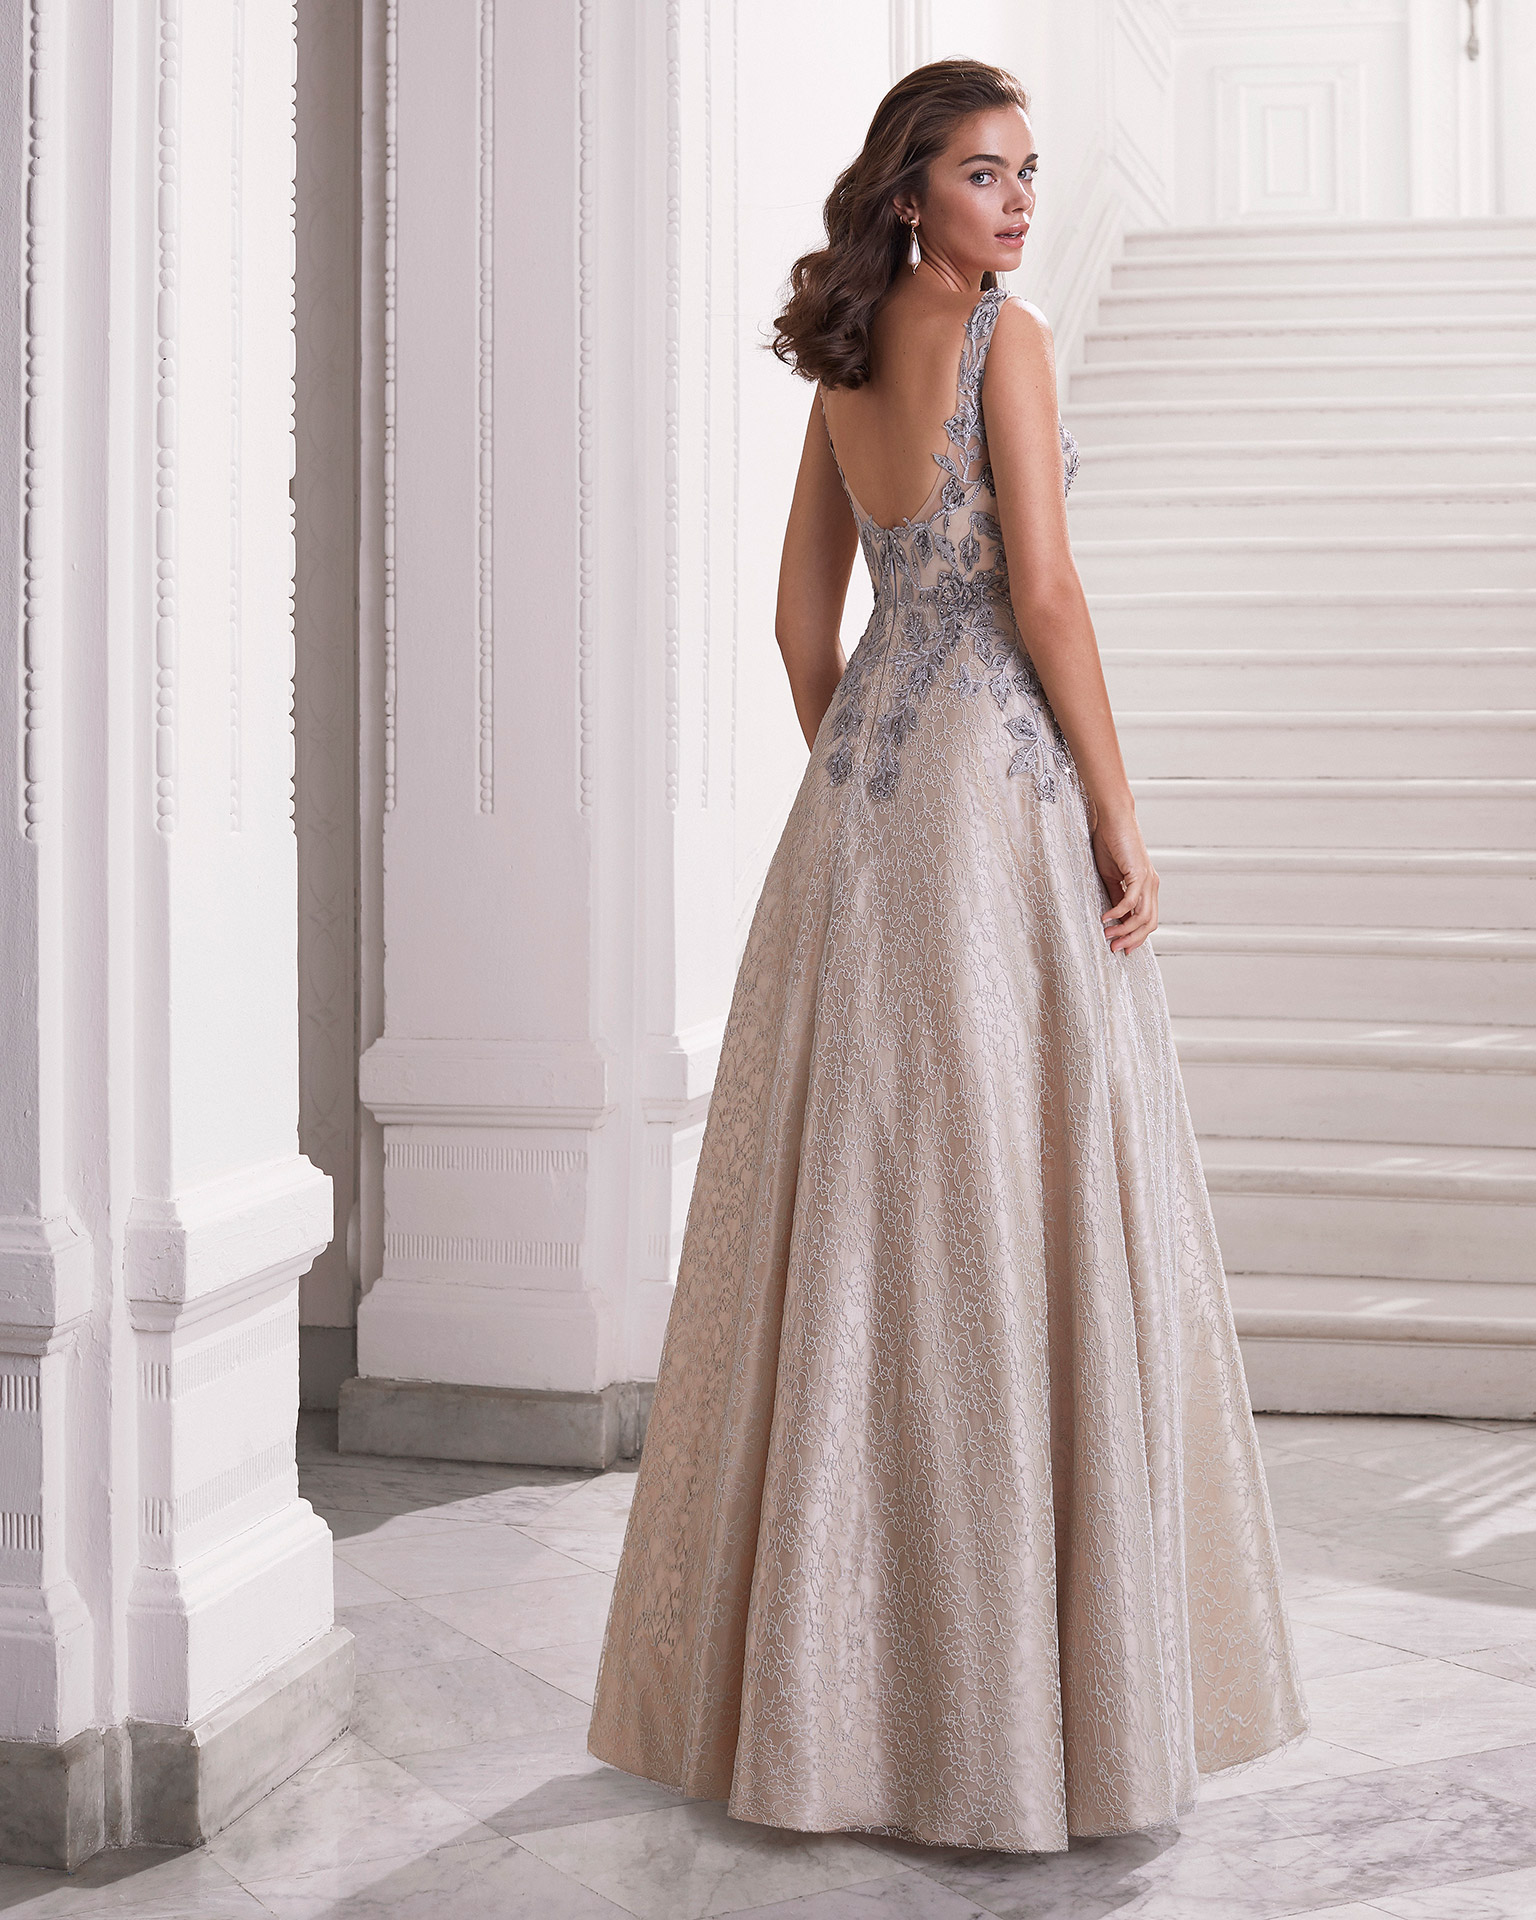 Lace cocktail dress. With V-neckline and V-back. With beaded lace on bodice. With shawl. 2021 MARFIL BARCELONA Collection.